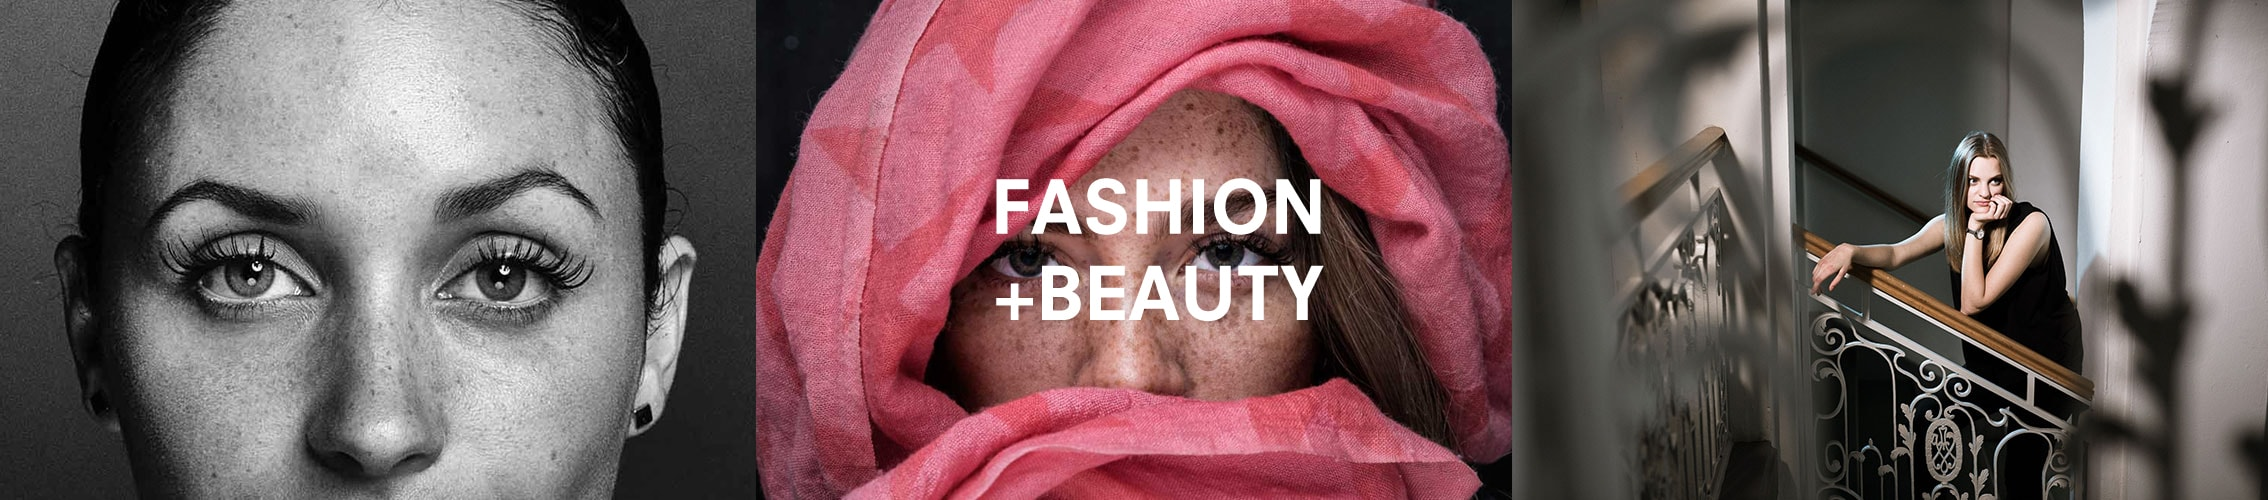 Fotowelt FASHION + BEAUTY